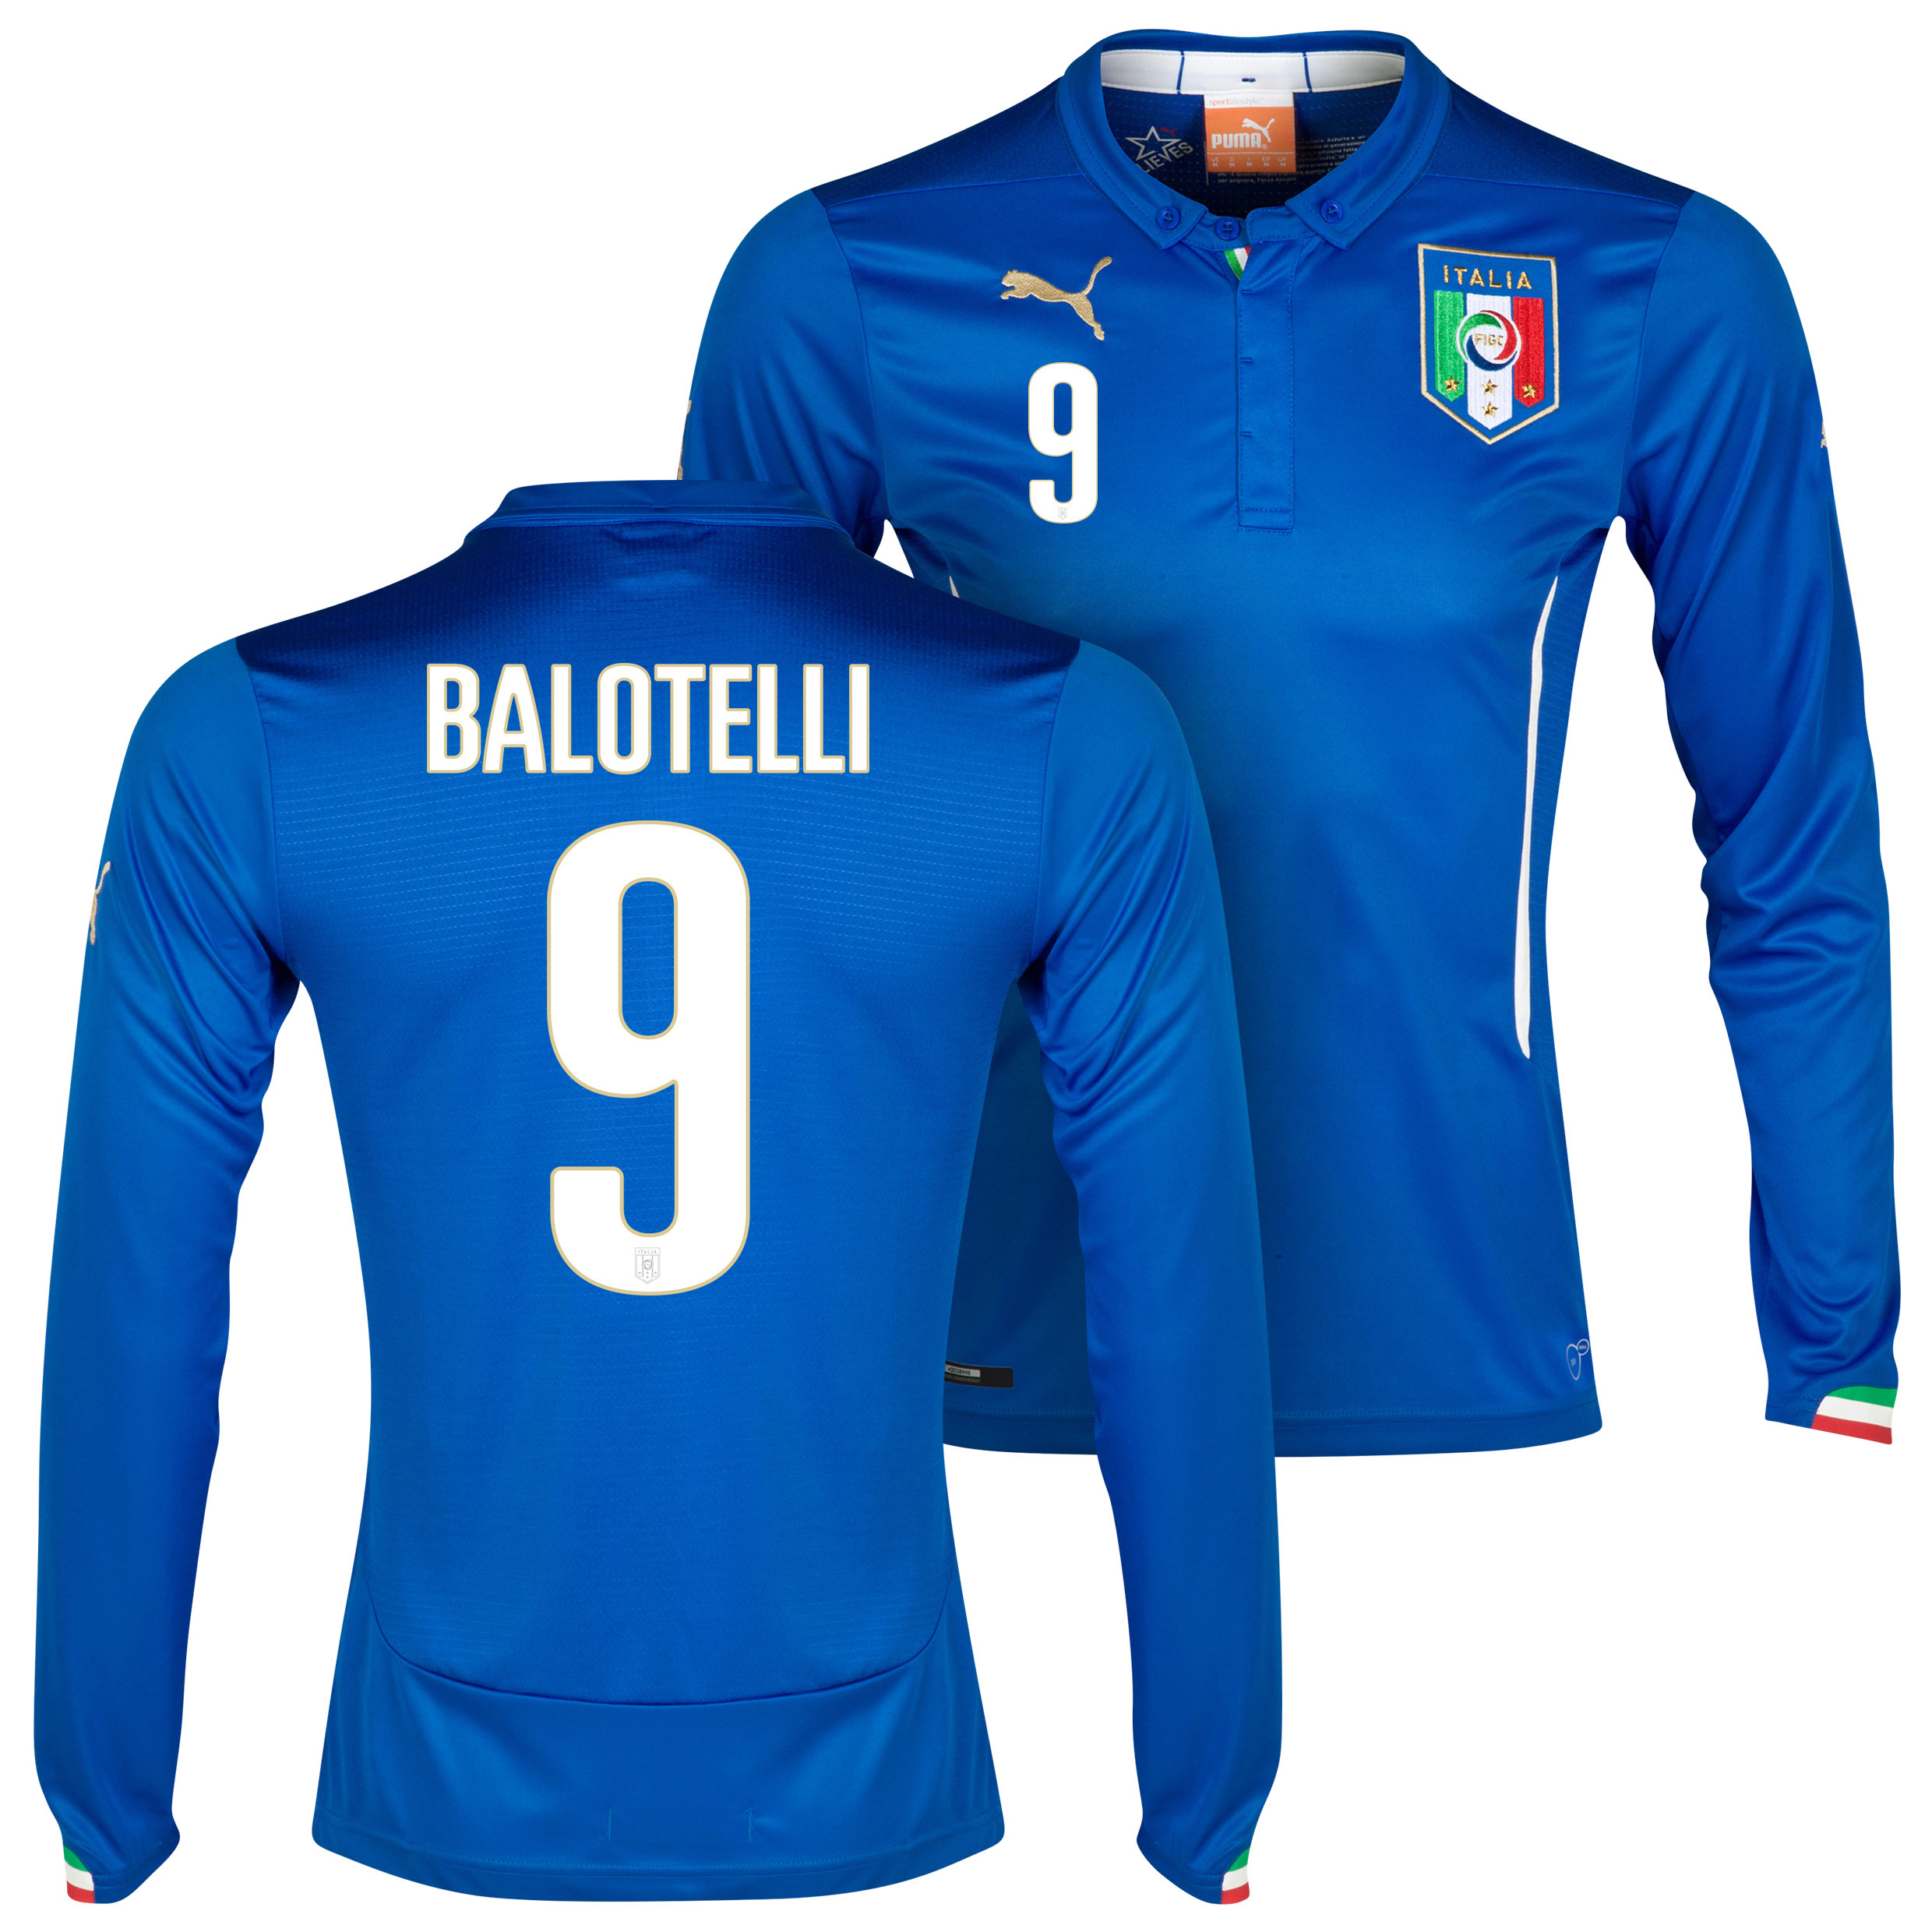 Italy Home Shirt 2013/14 - Long Sleeved with Balotelli 9 printing